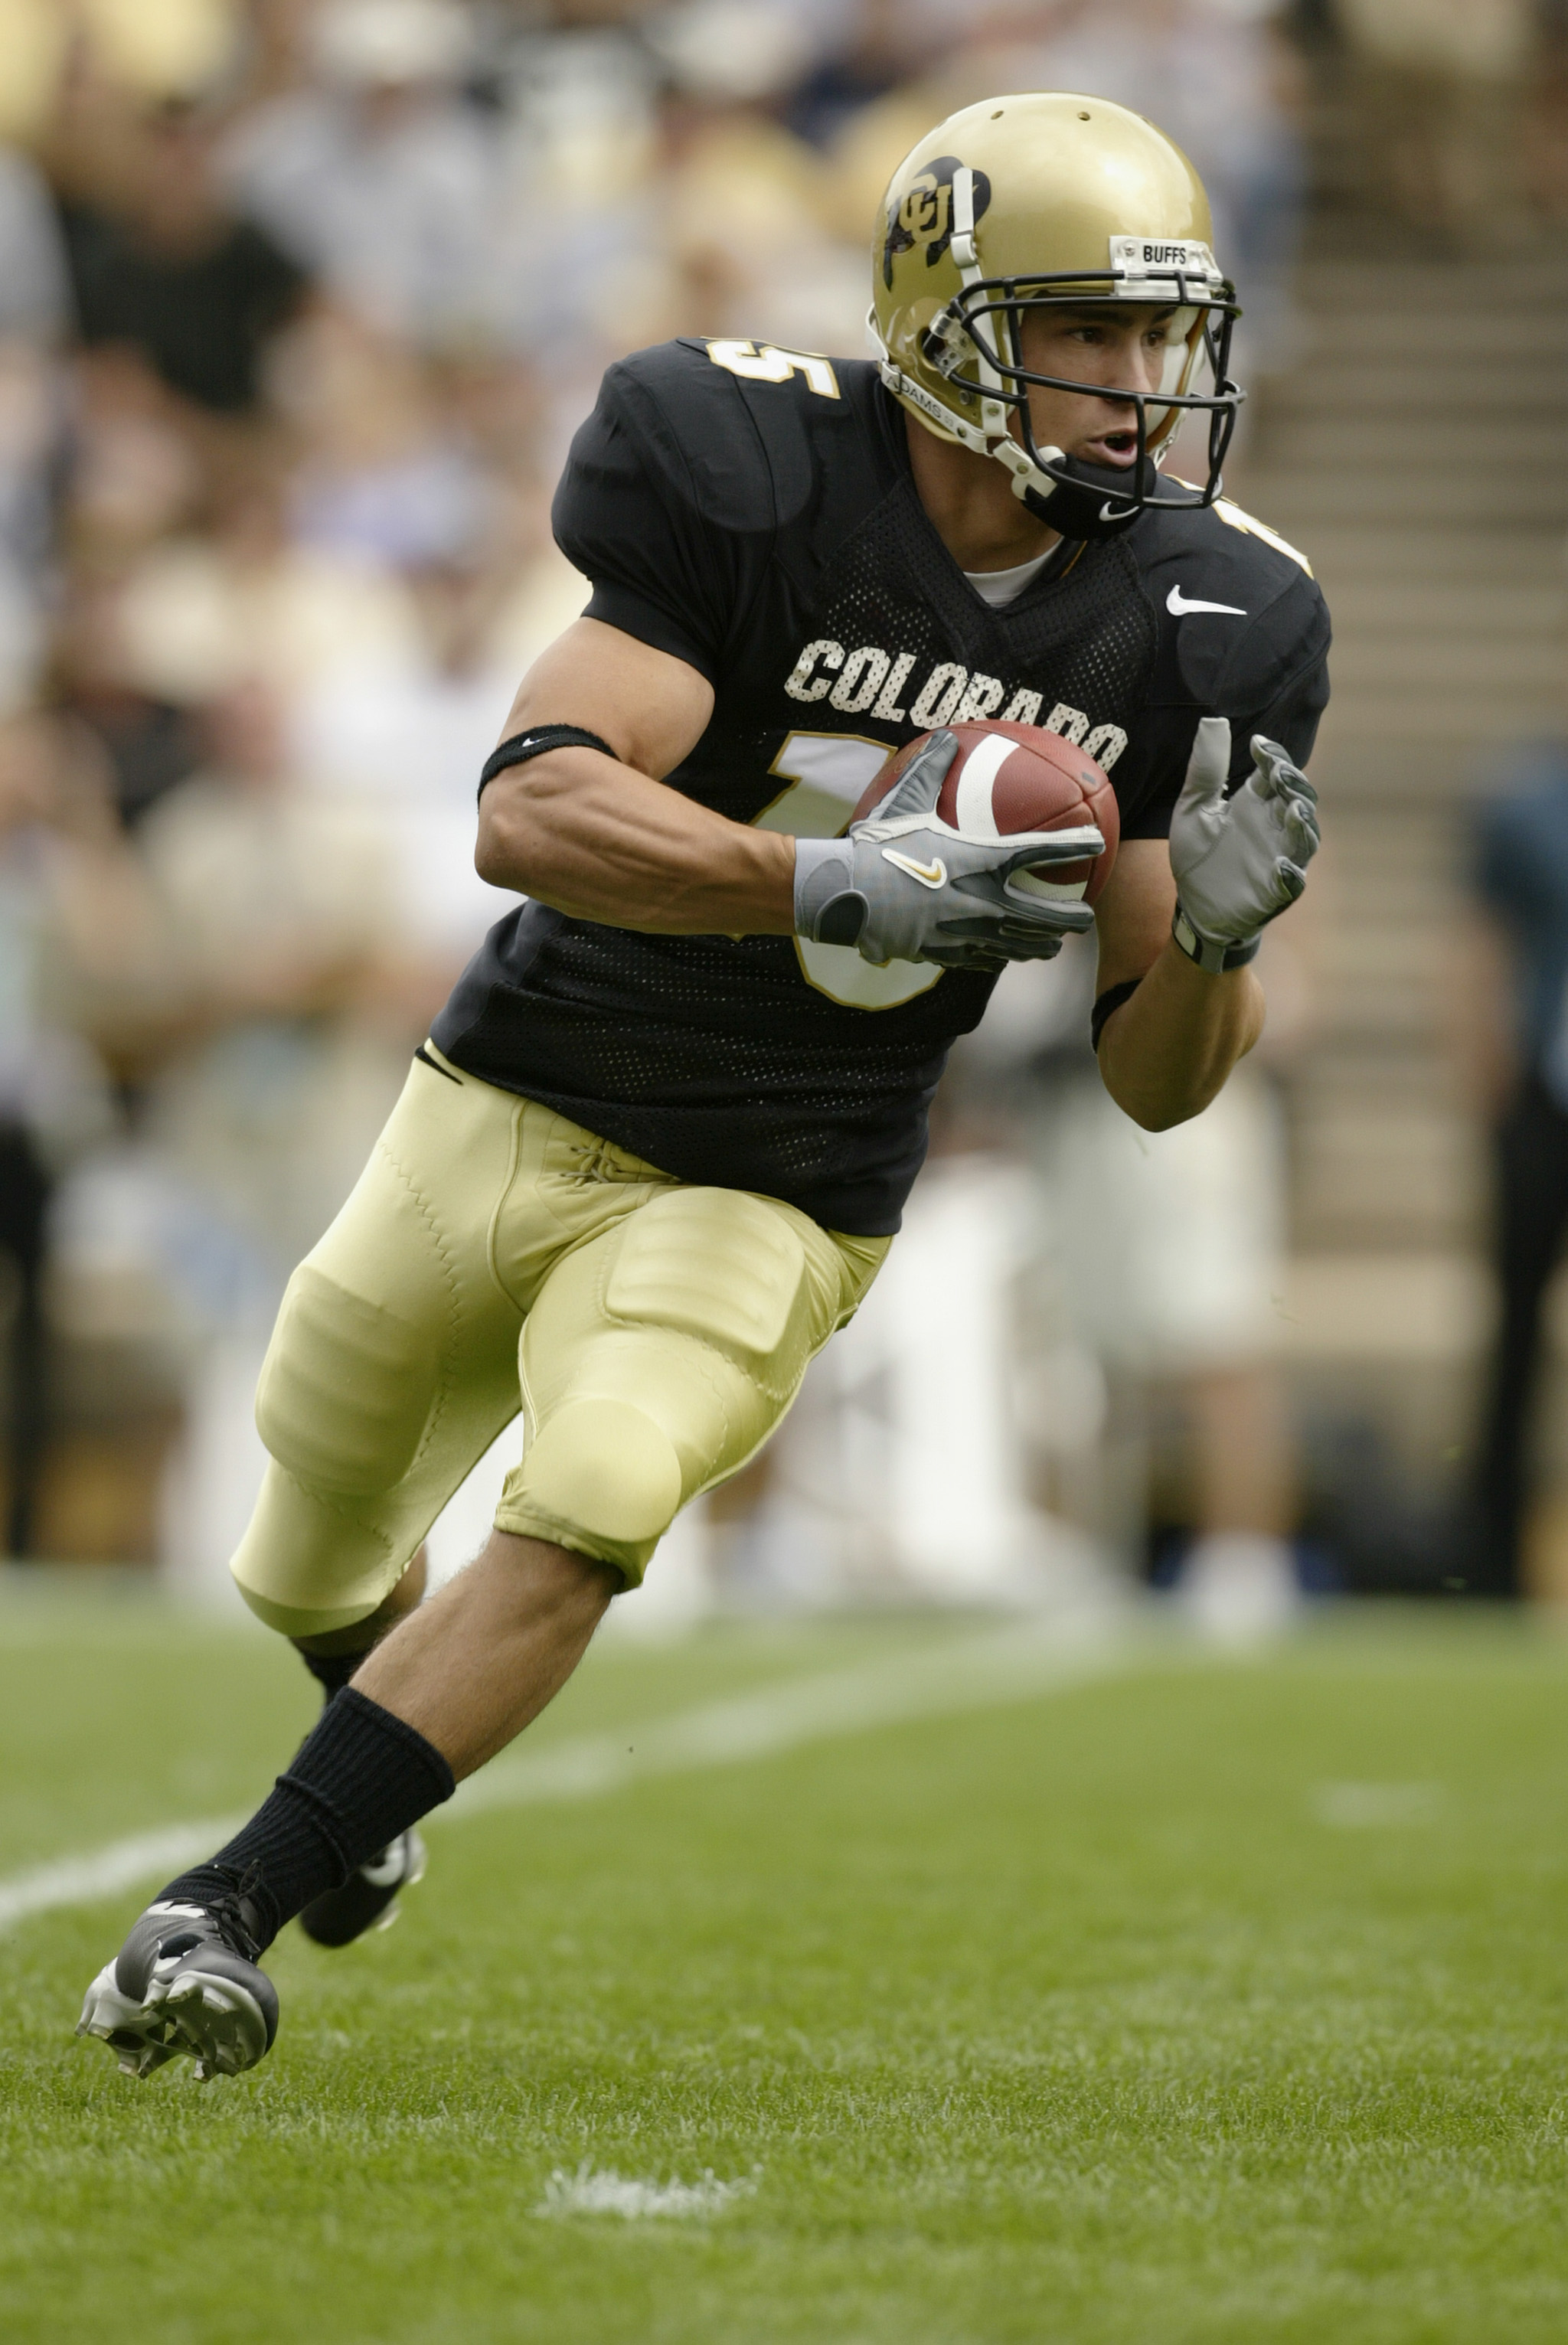 BOULDER, CO - SEPTEMBER 6:  Wide receiver Jeremy Bloom #15 of the Colorado Buffaloes runs a reverse against the UCLA Bruins on September 6, 2003 at Folsom Field in Boulder, Colorado. Colorado defeated UCLA 16-14. (Photo by Brian Bahr/Getty Images)